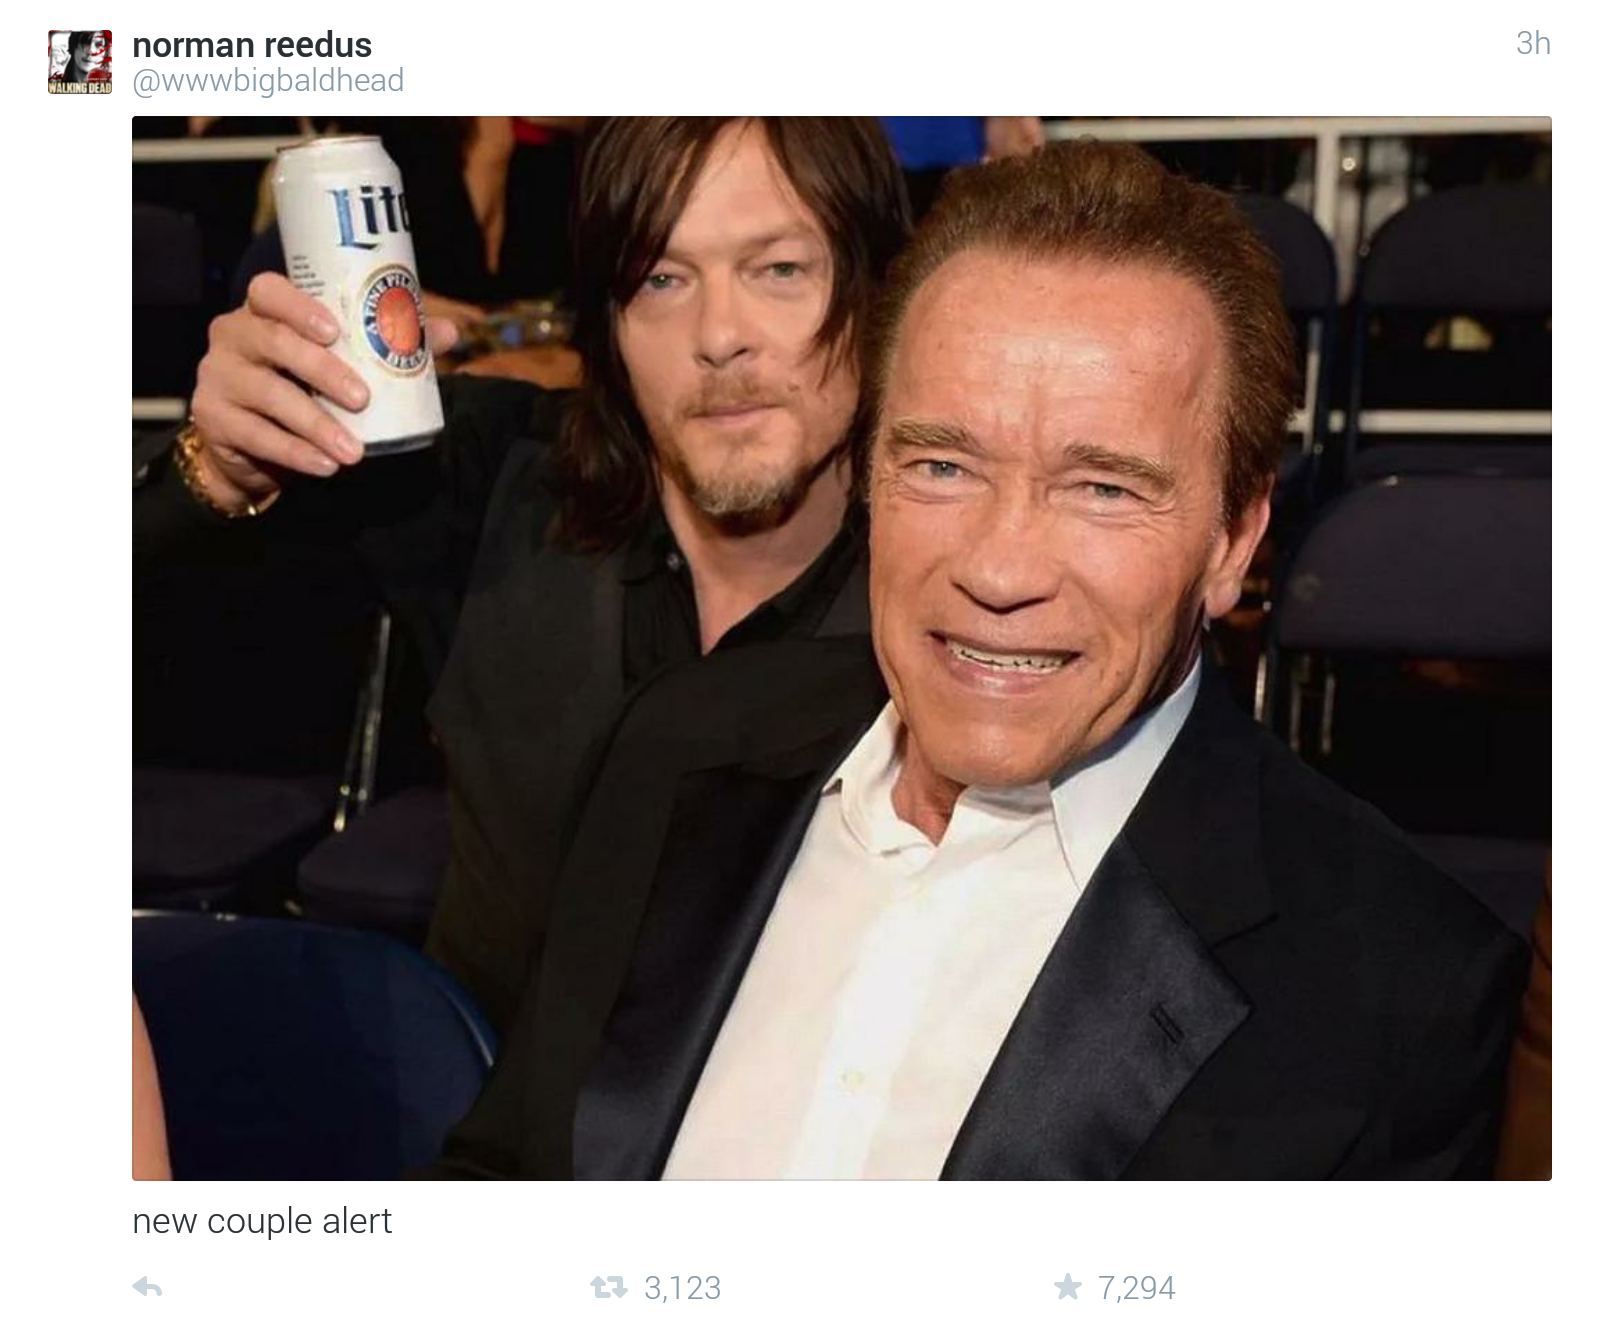 Norman Reedus Tweets About Arnold Schwarzenegger From breaking news and entertainment to sports and politics, get the full walking dead's norman reedus reveals which character he'd like to play if he wasn't cast as daryl dixon. norman reedus tweets about arnold